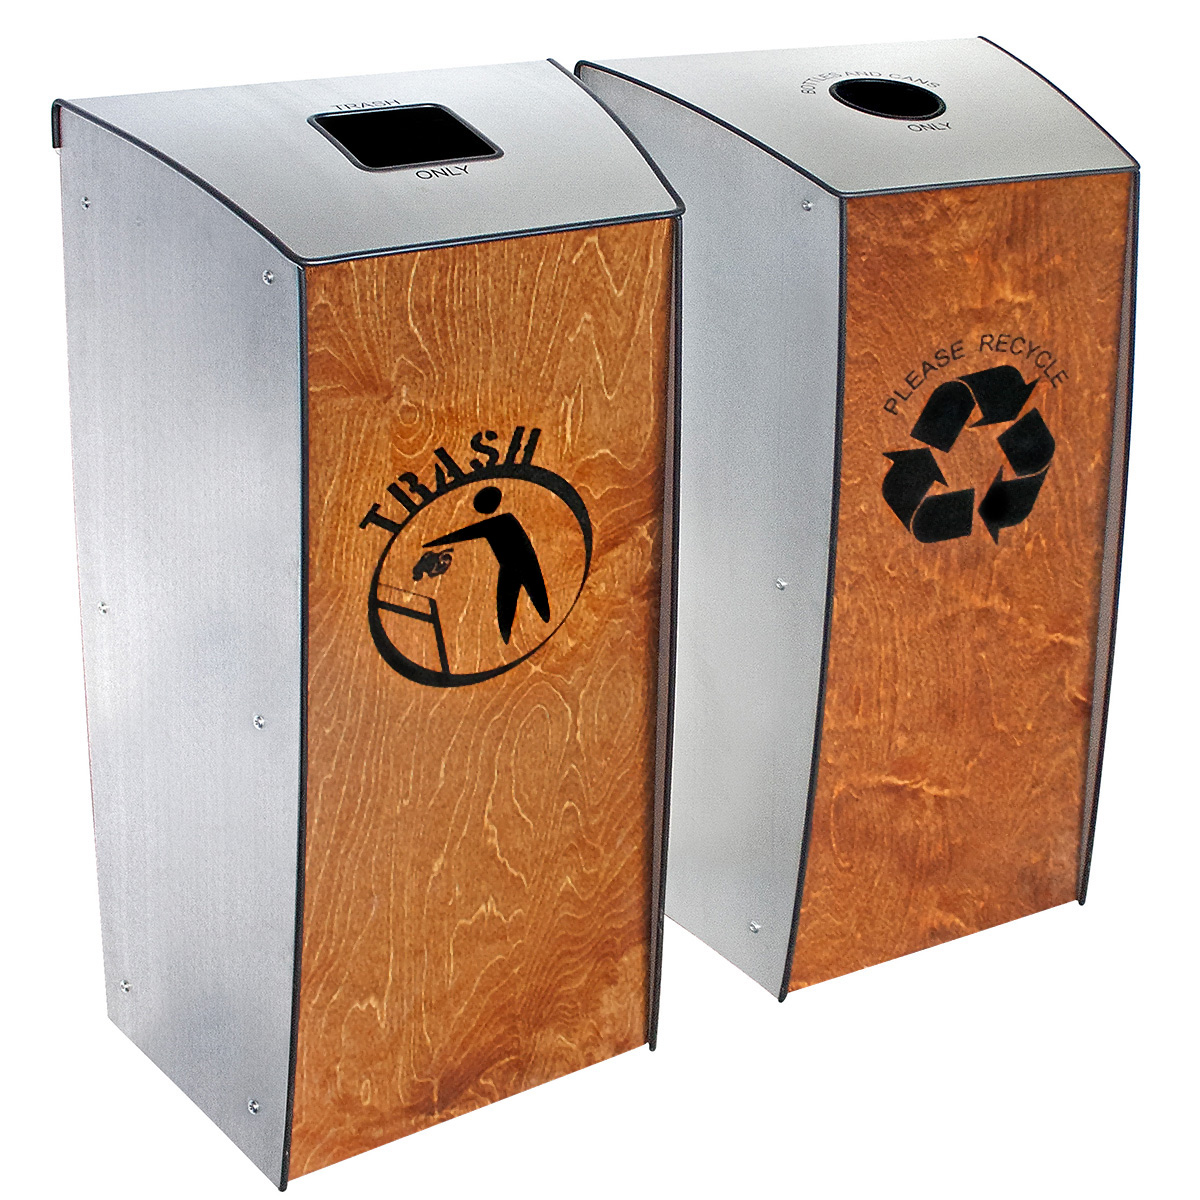 Evolution-40™ Trash & Bottle/Can Recycling 2-Bin System